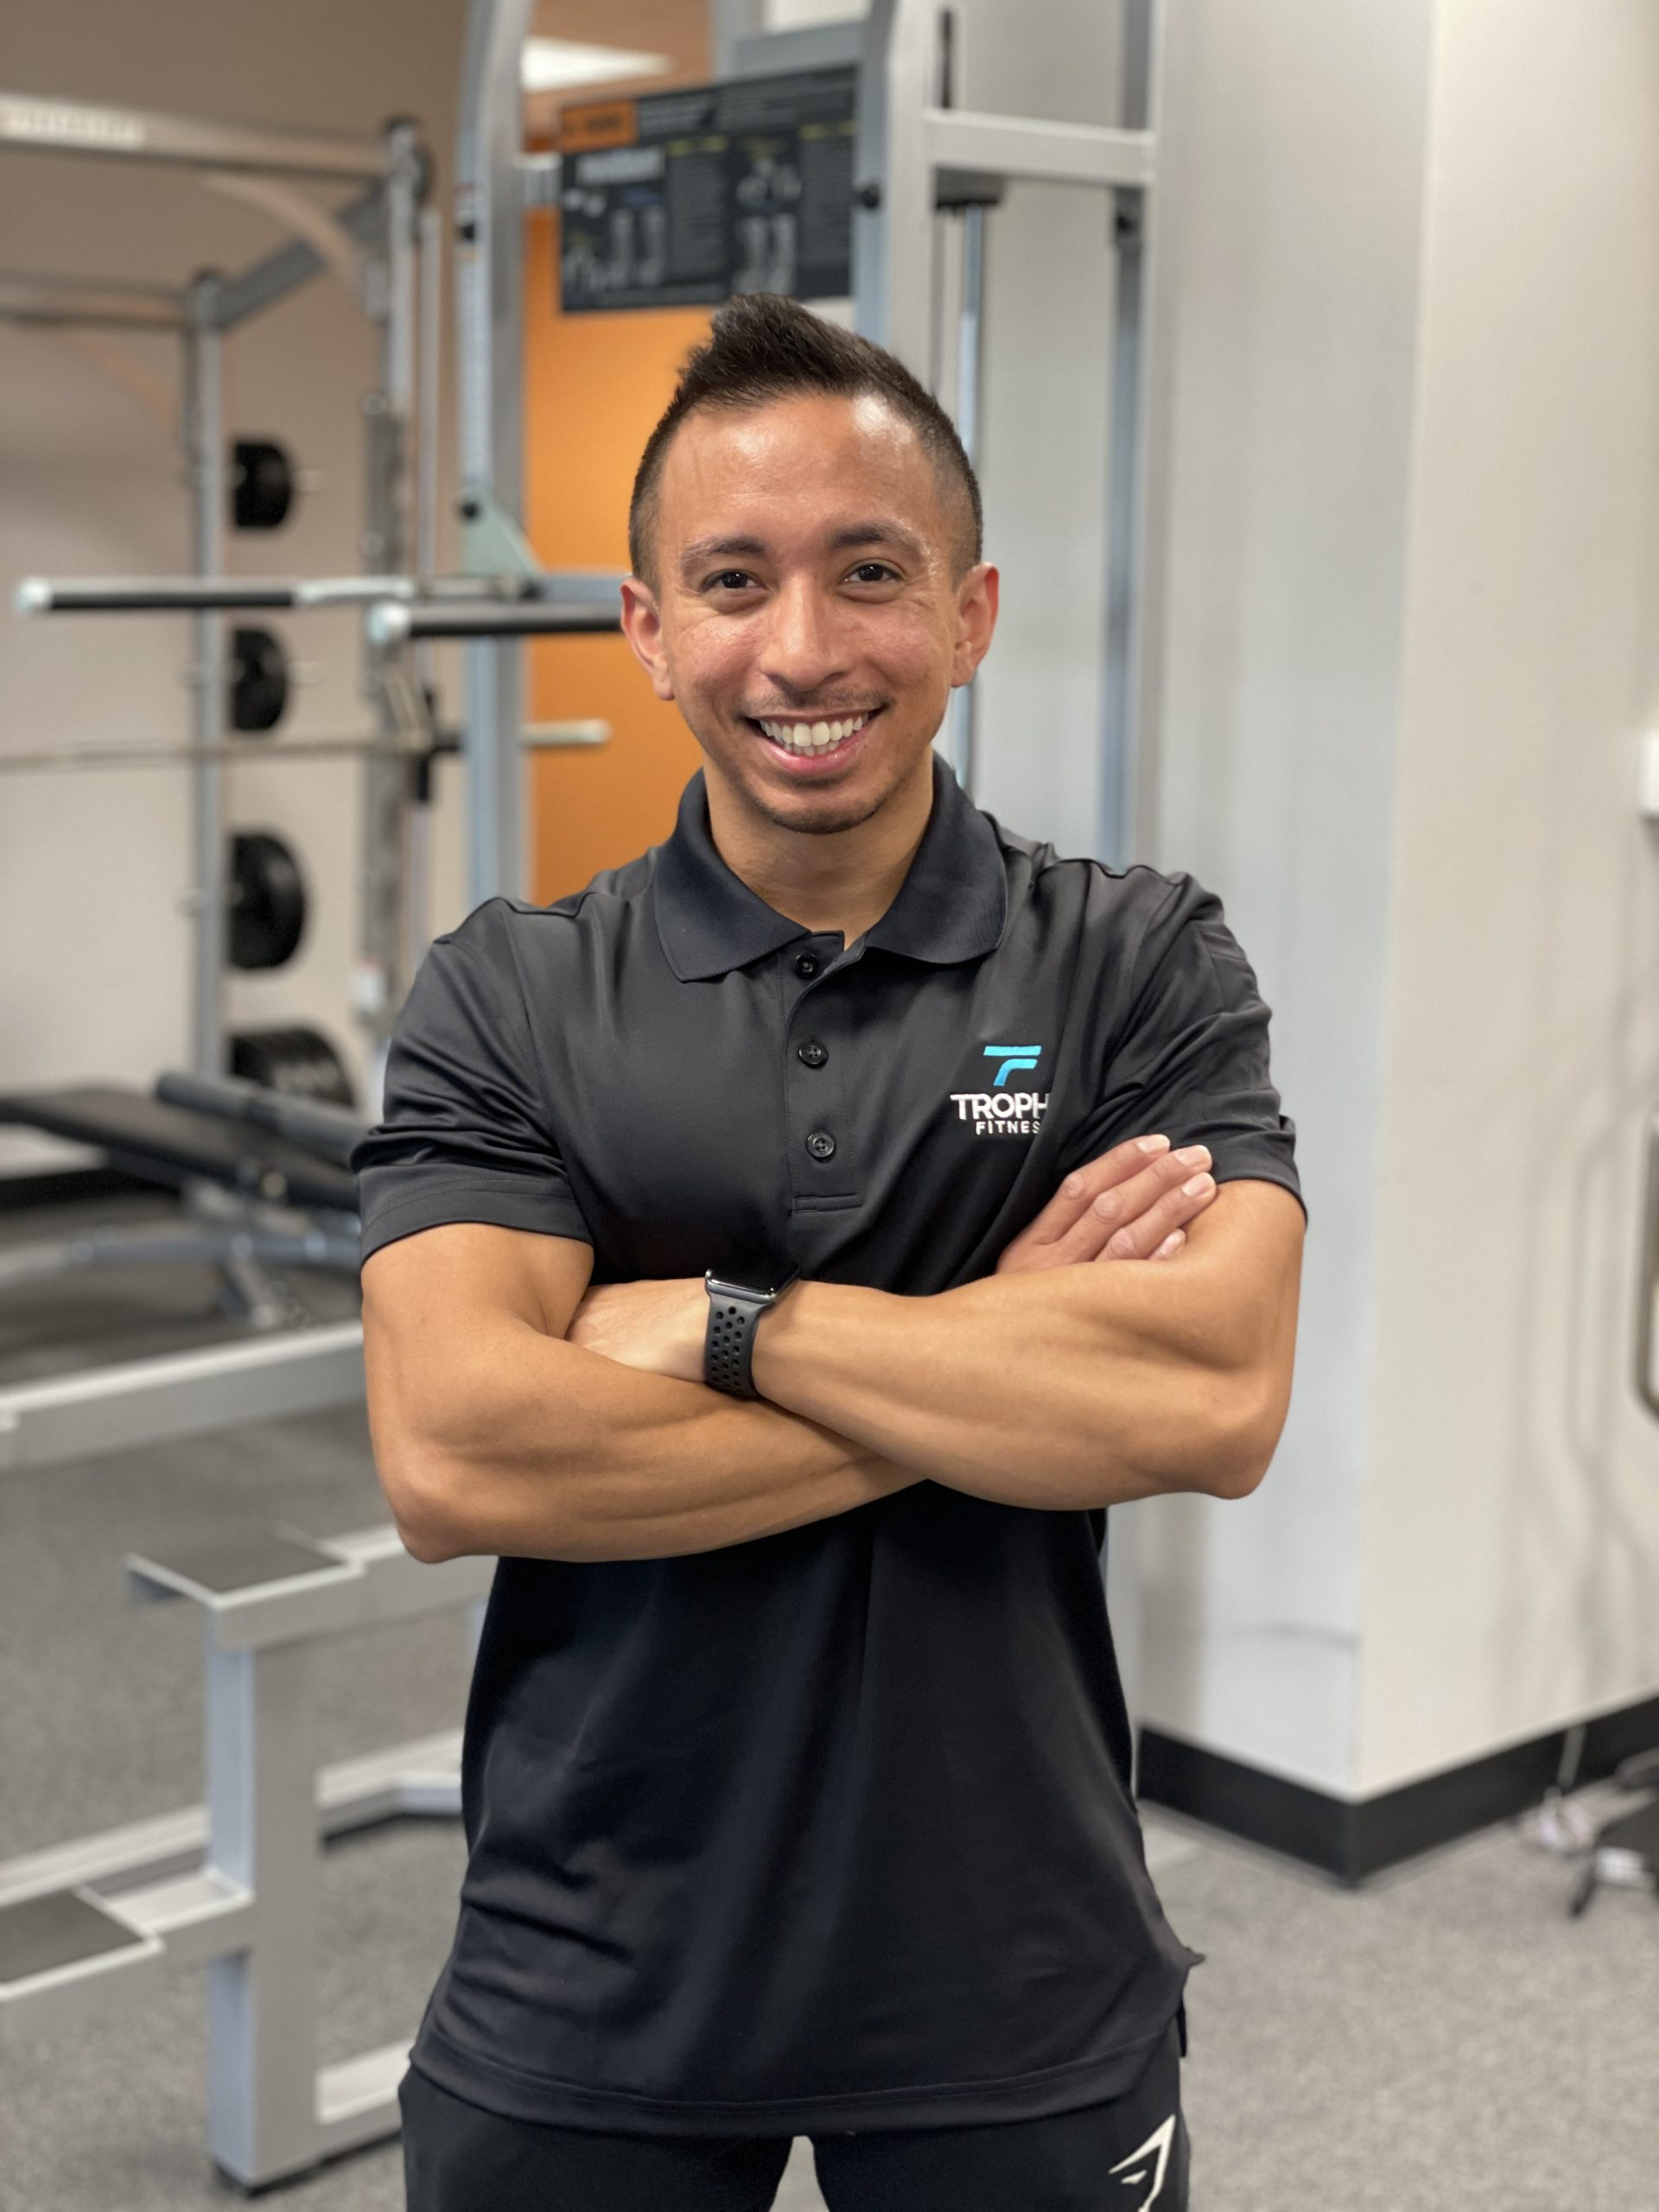 Training and Fitness Coaching